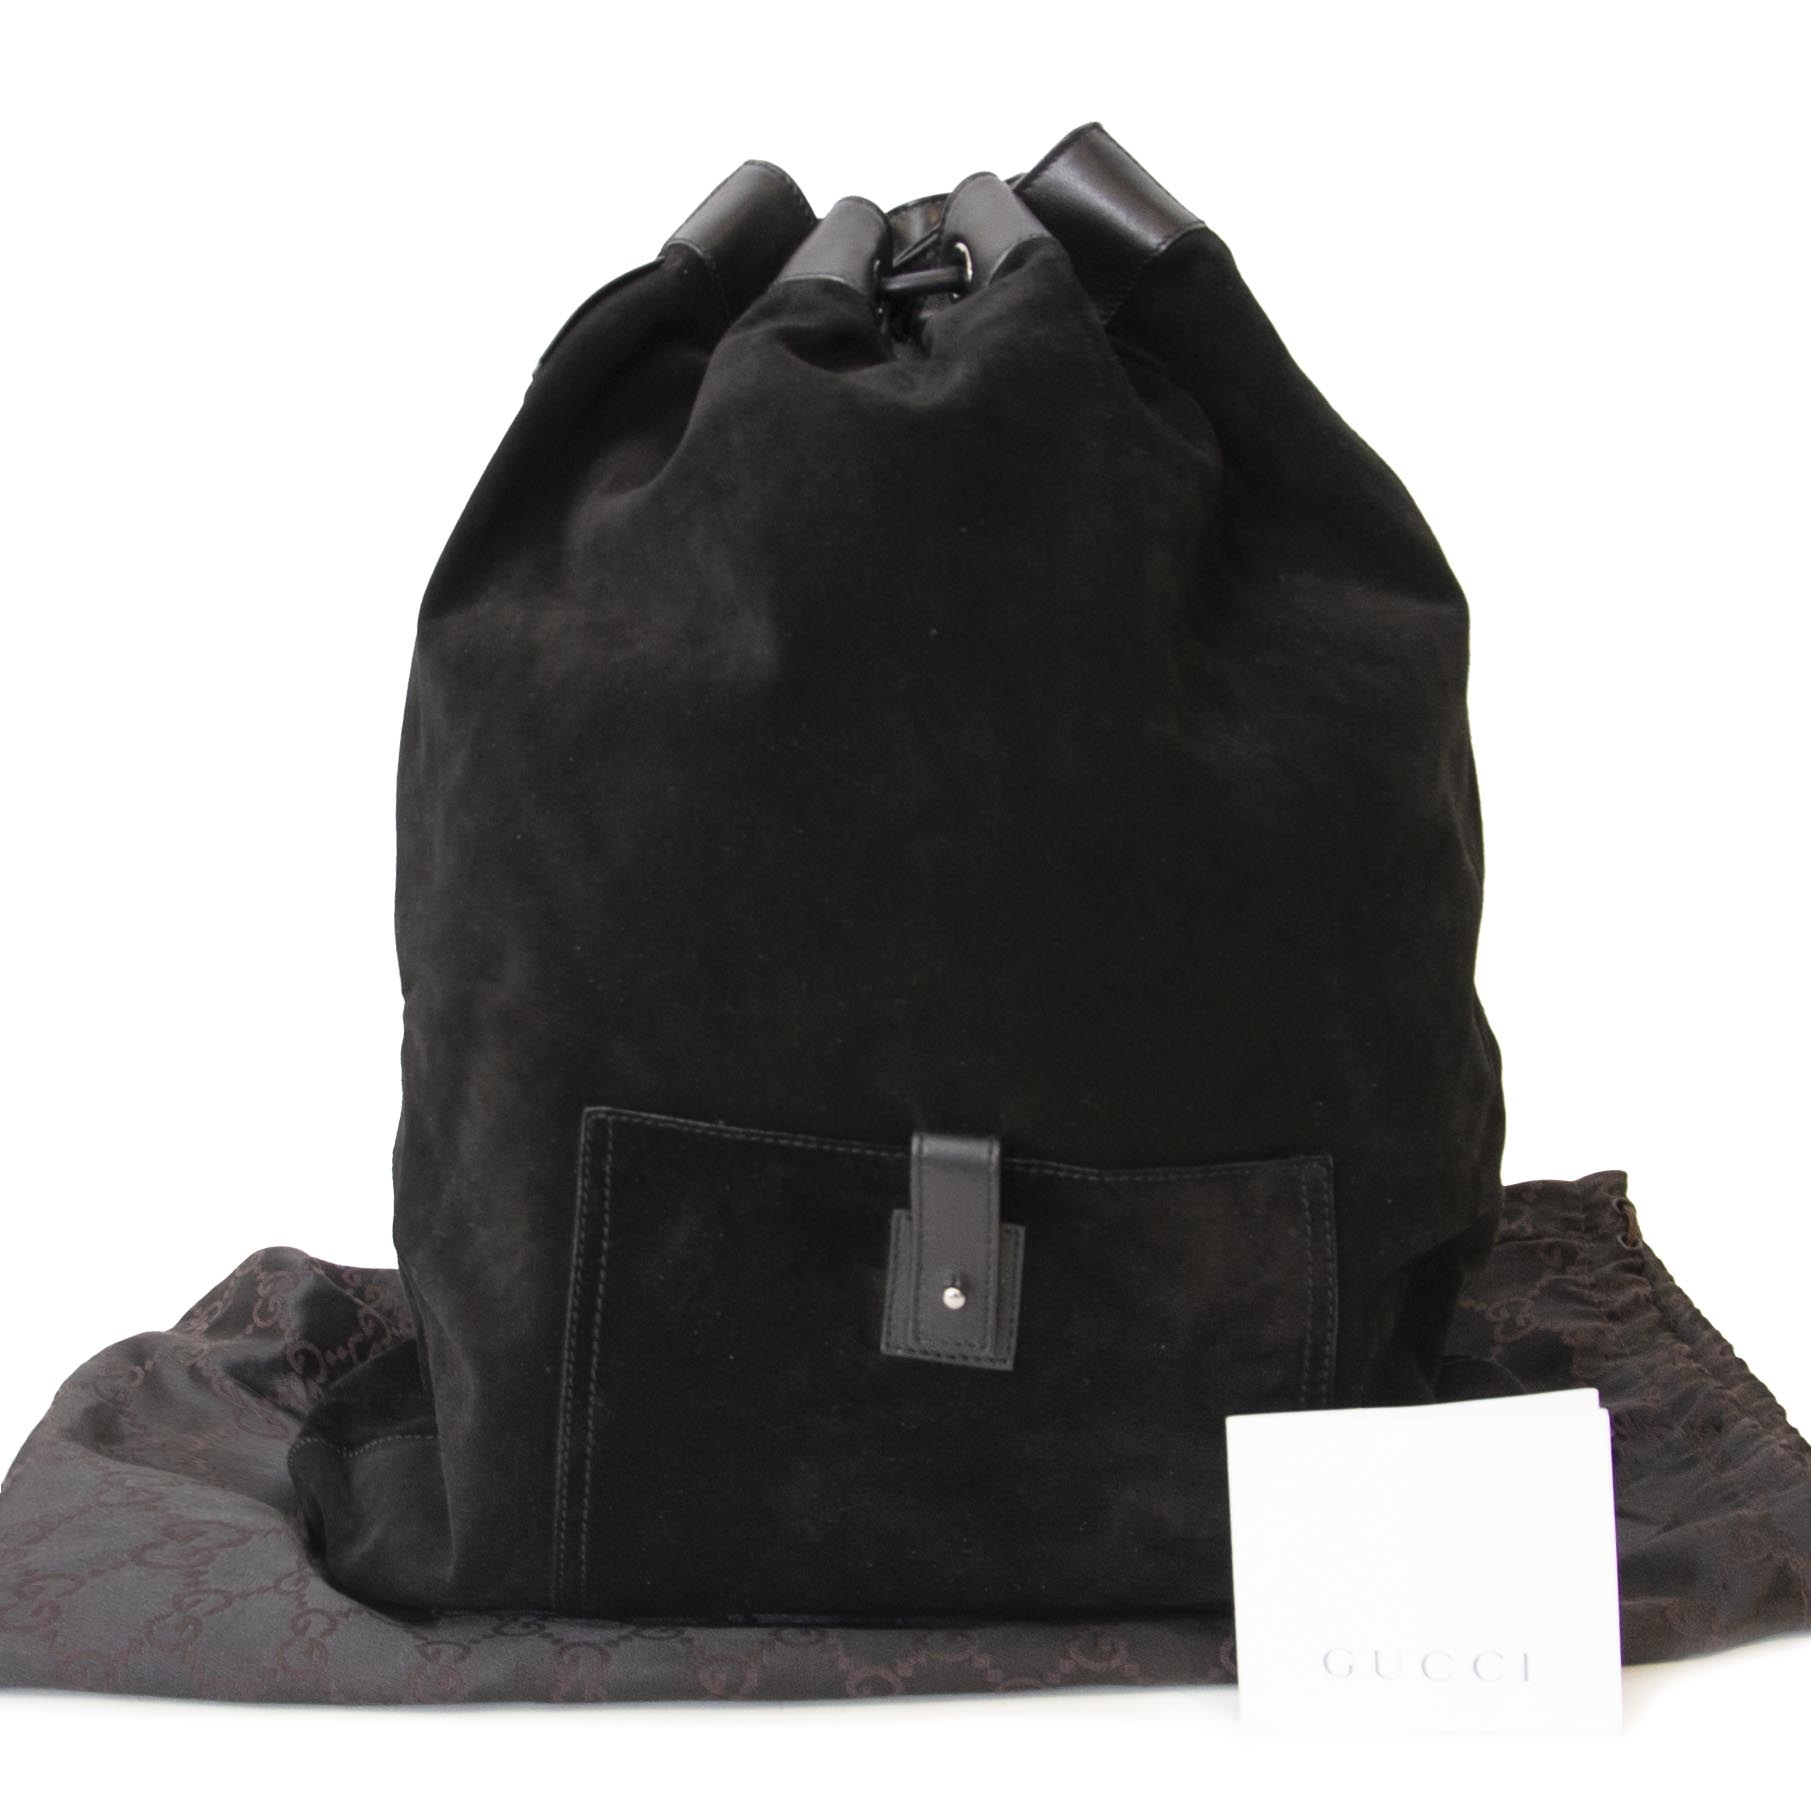 Gucci Black Suede Backpack. Koop online tweedehands Gucci items, zwarte rugzak, designer item.